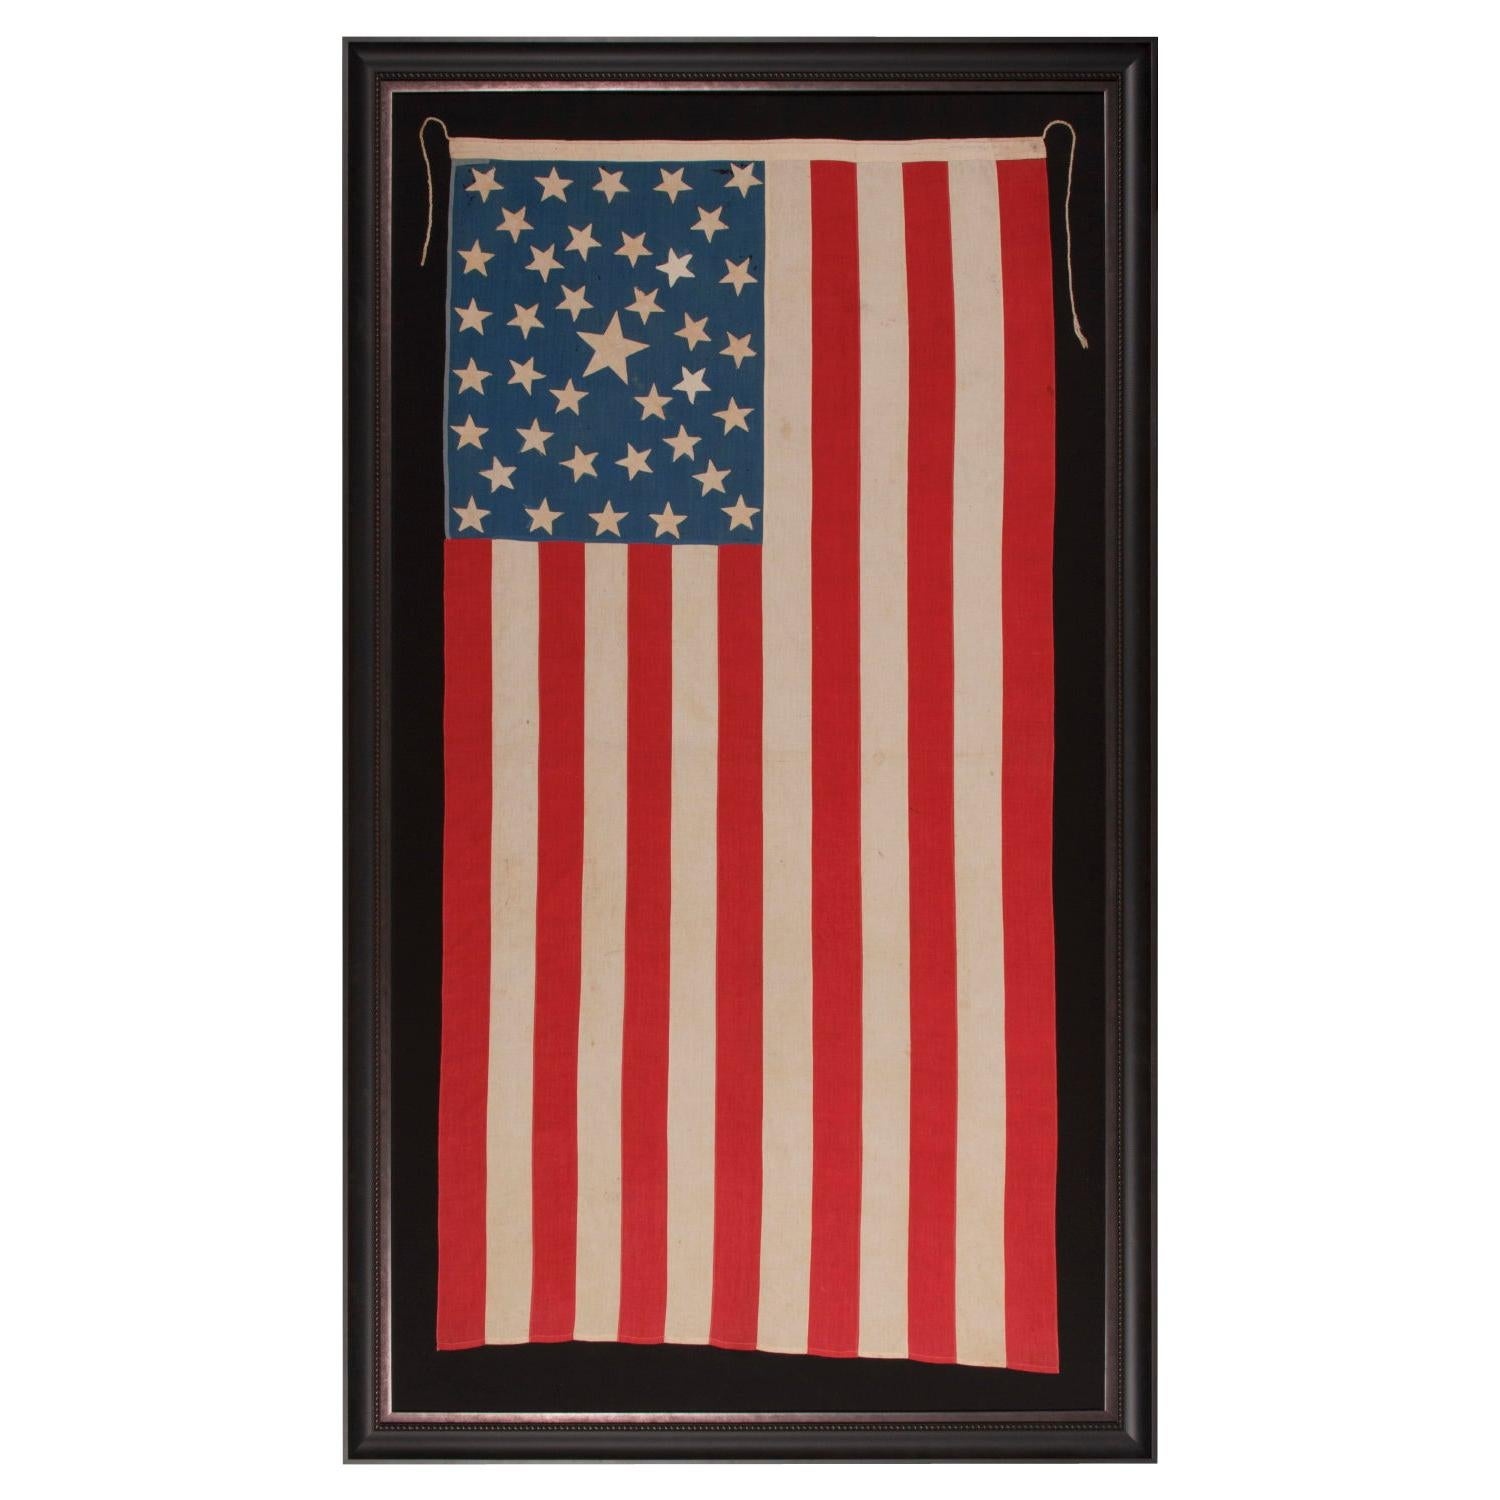 38 Star American Flag w/ a Southern Cross in the Canton, Colorado Statehood